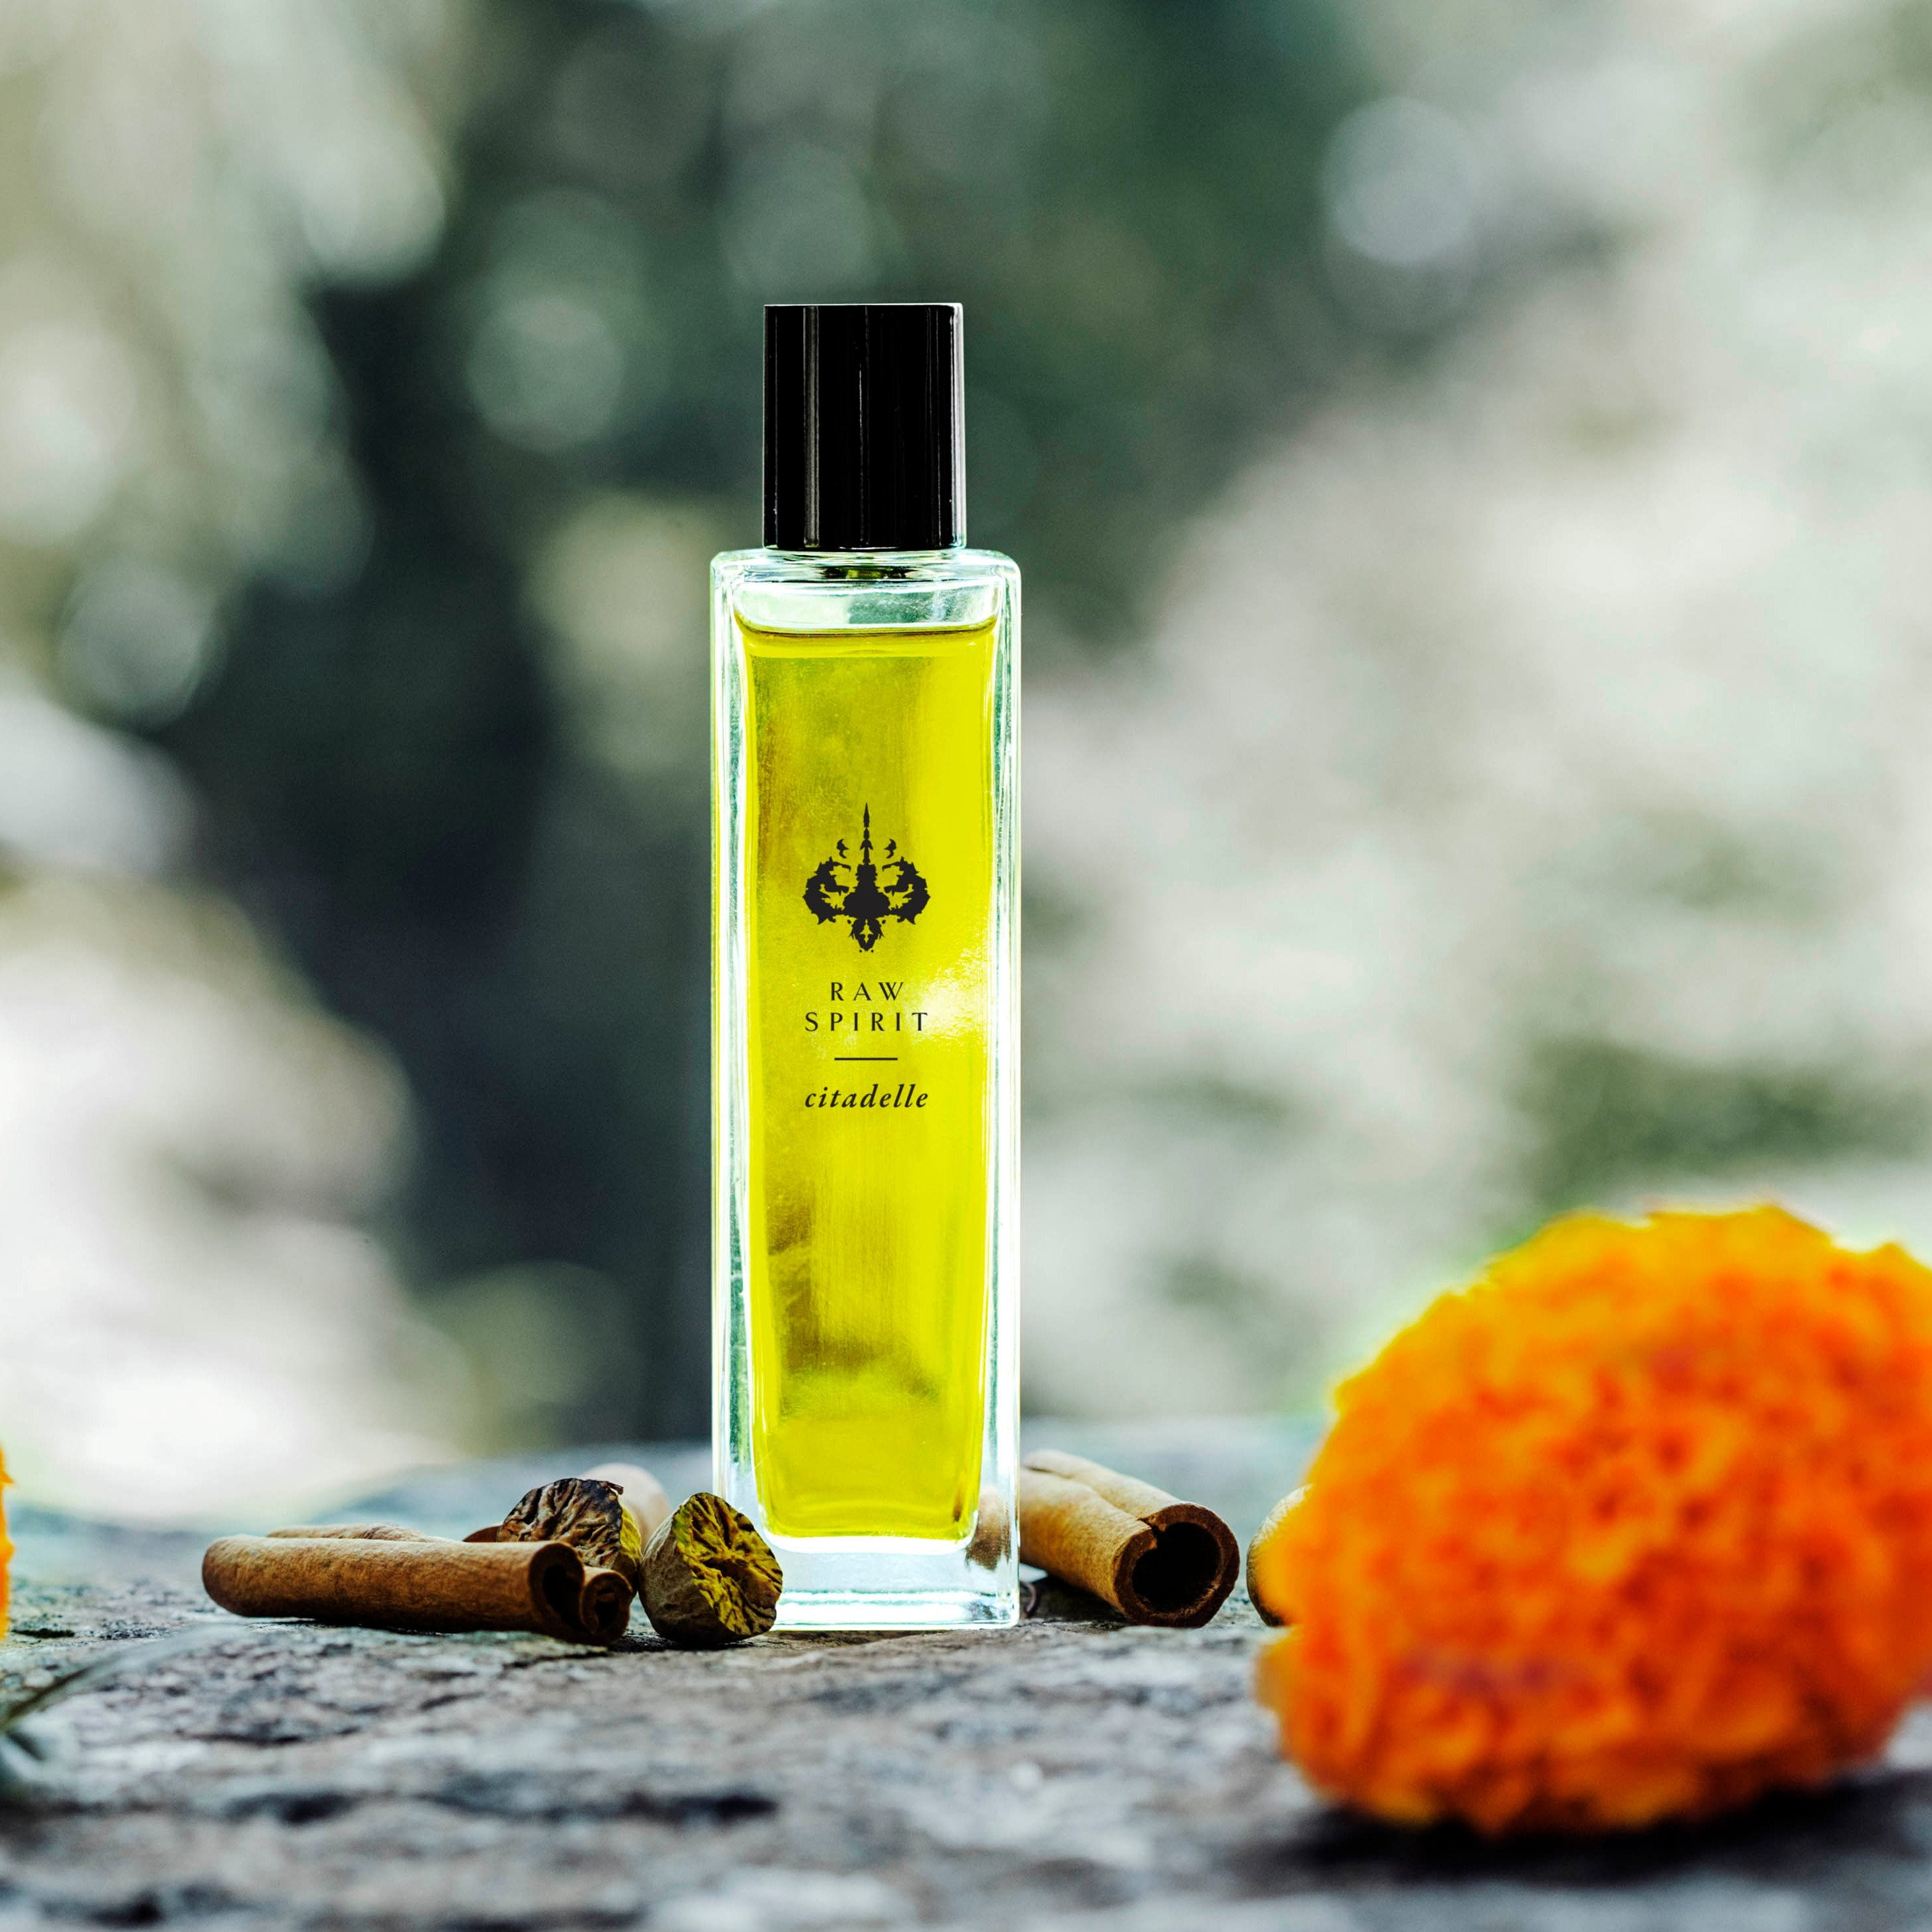 Raw Spirit Citadelle perfume is a fresh, clean, modern interpretation of a classic vetiver fragrance, blending premium Haitian vetiver, marigold, pear, bergamot, lemon, cinnamon, nutmeg, amberwood, musk and cedarwood.